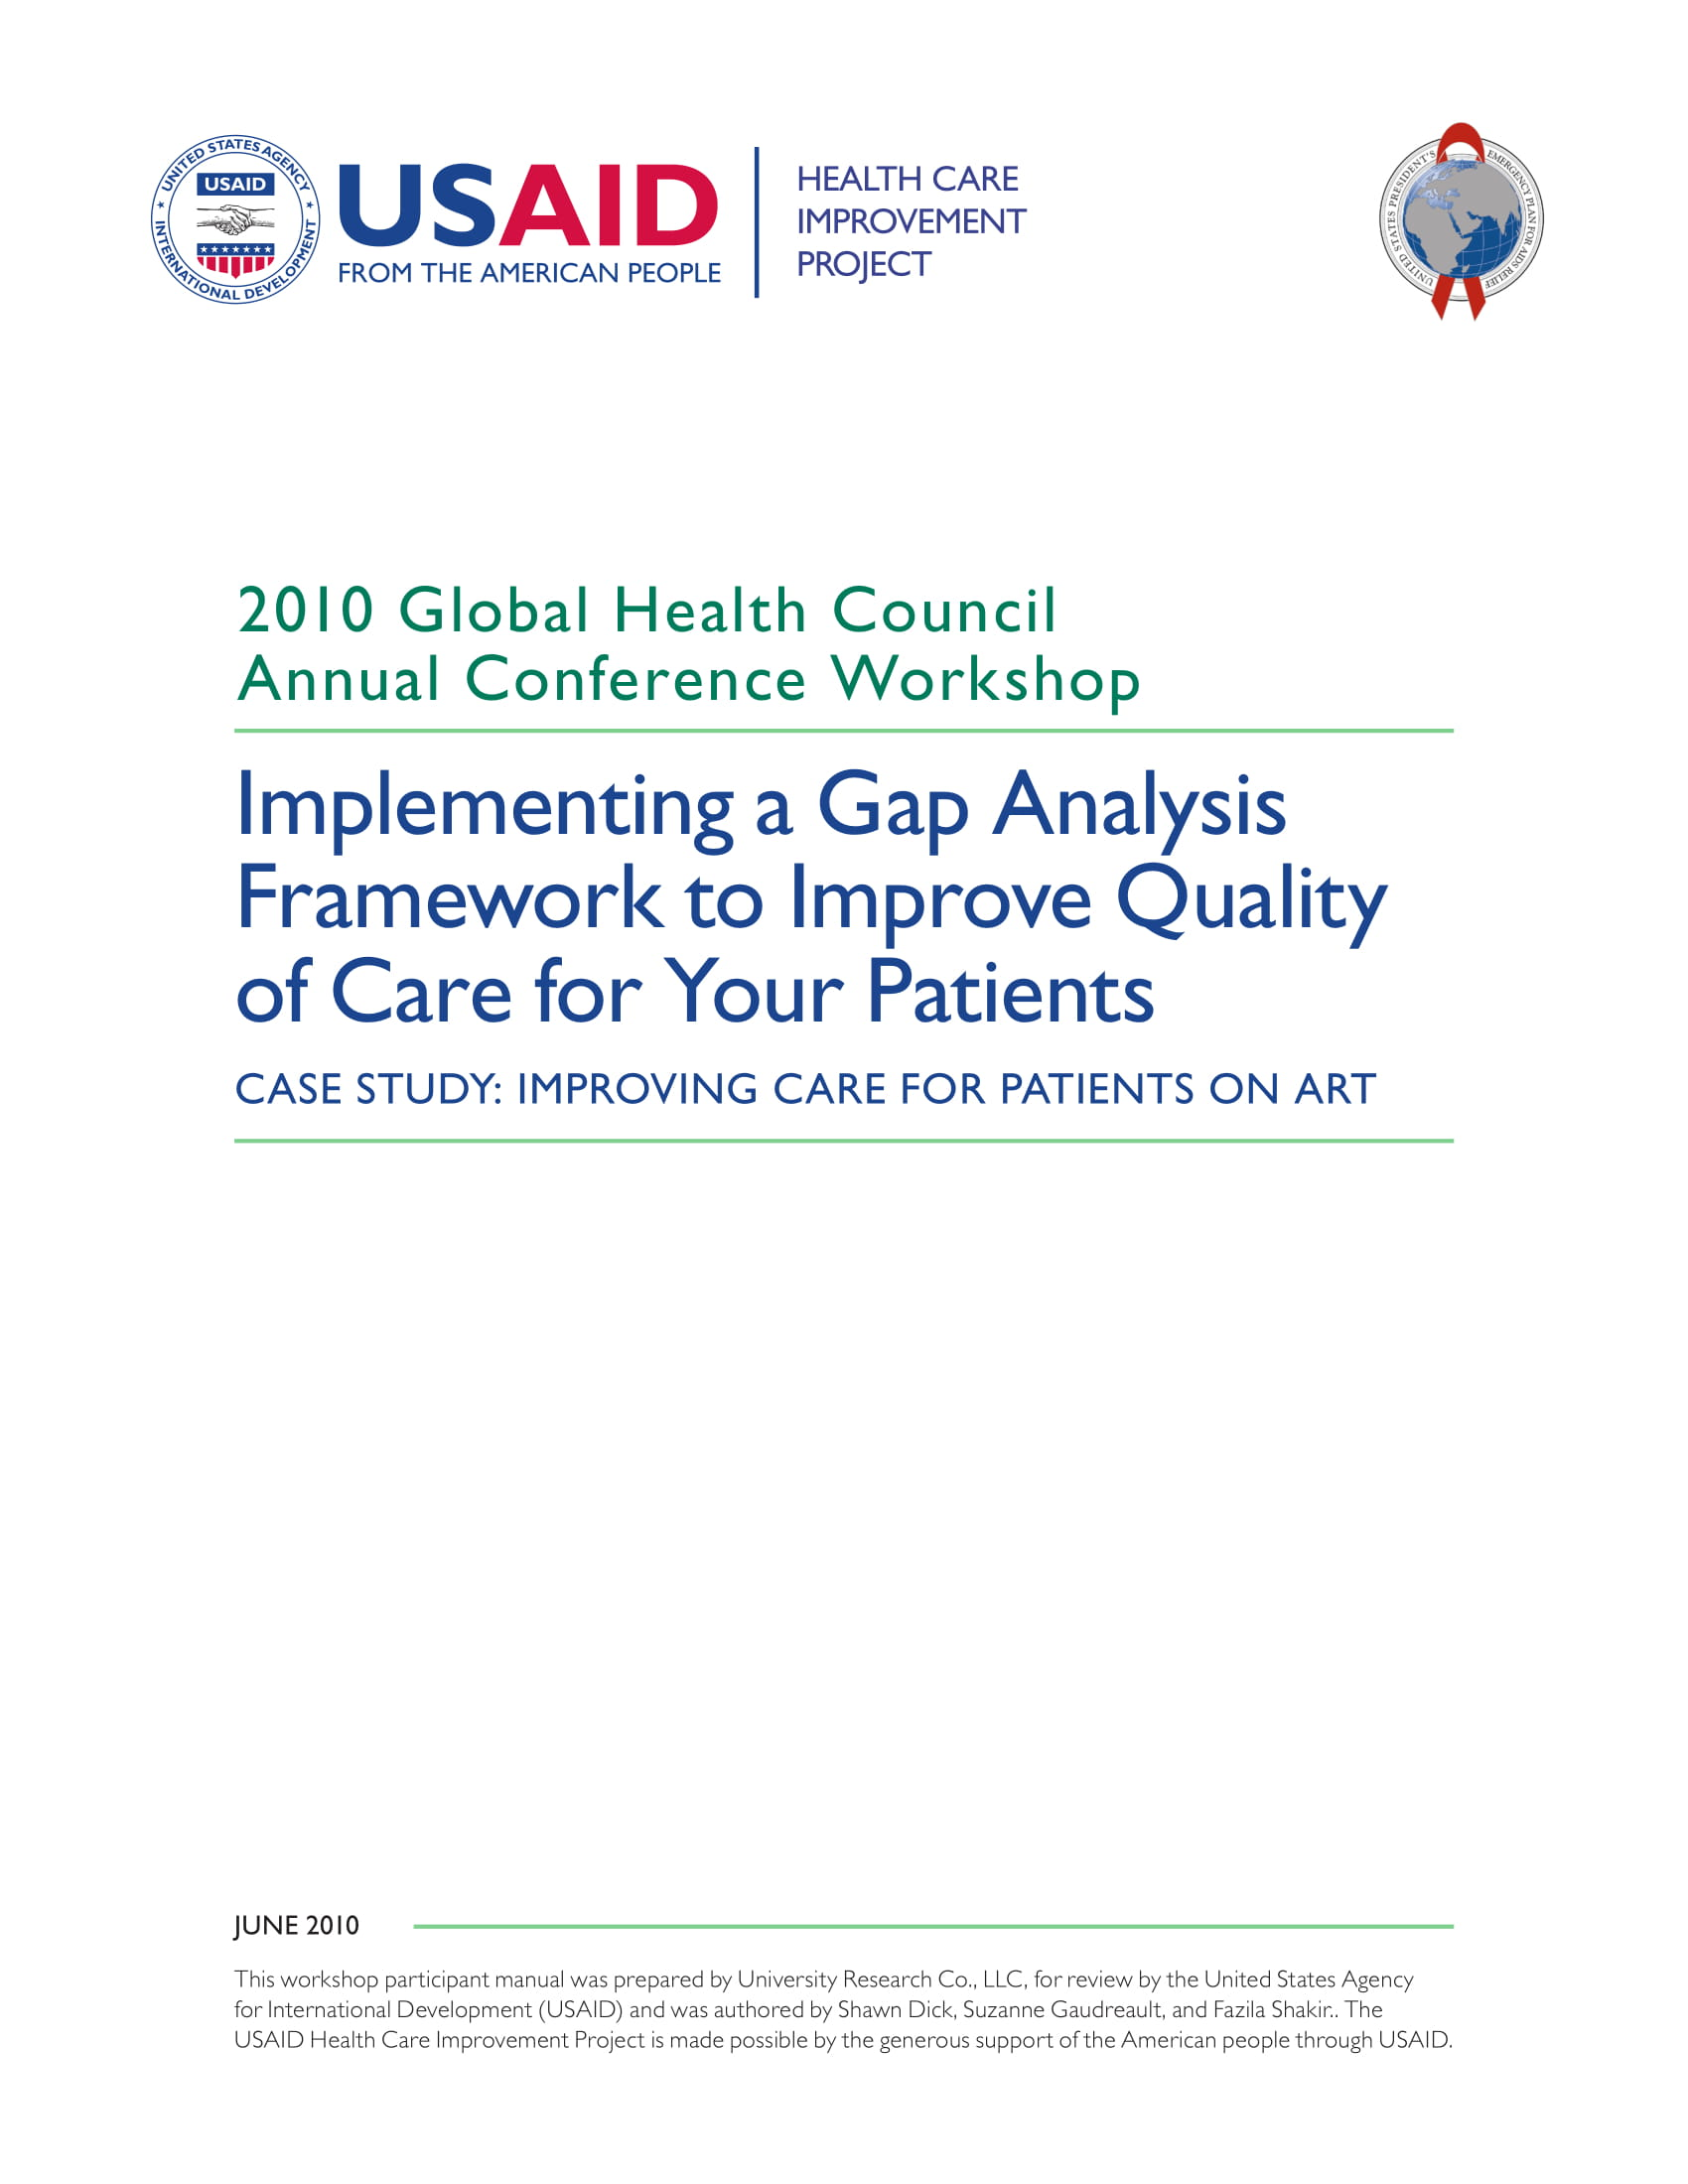 implementing a gap analysis framework to improve quality of care for your patients example 01